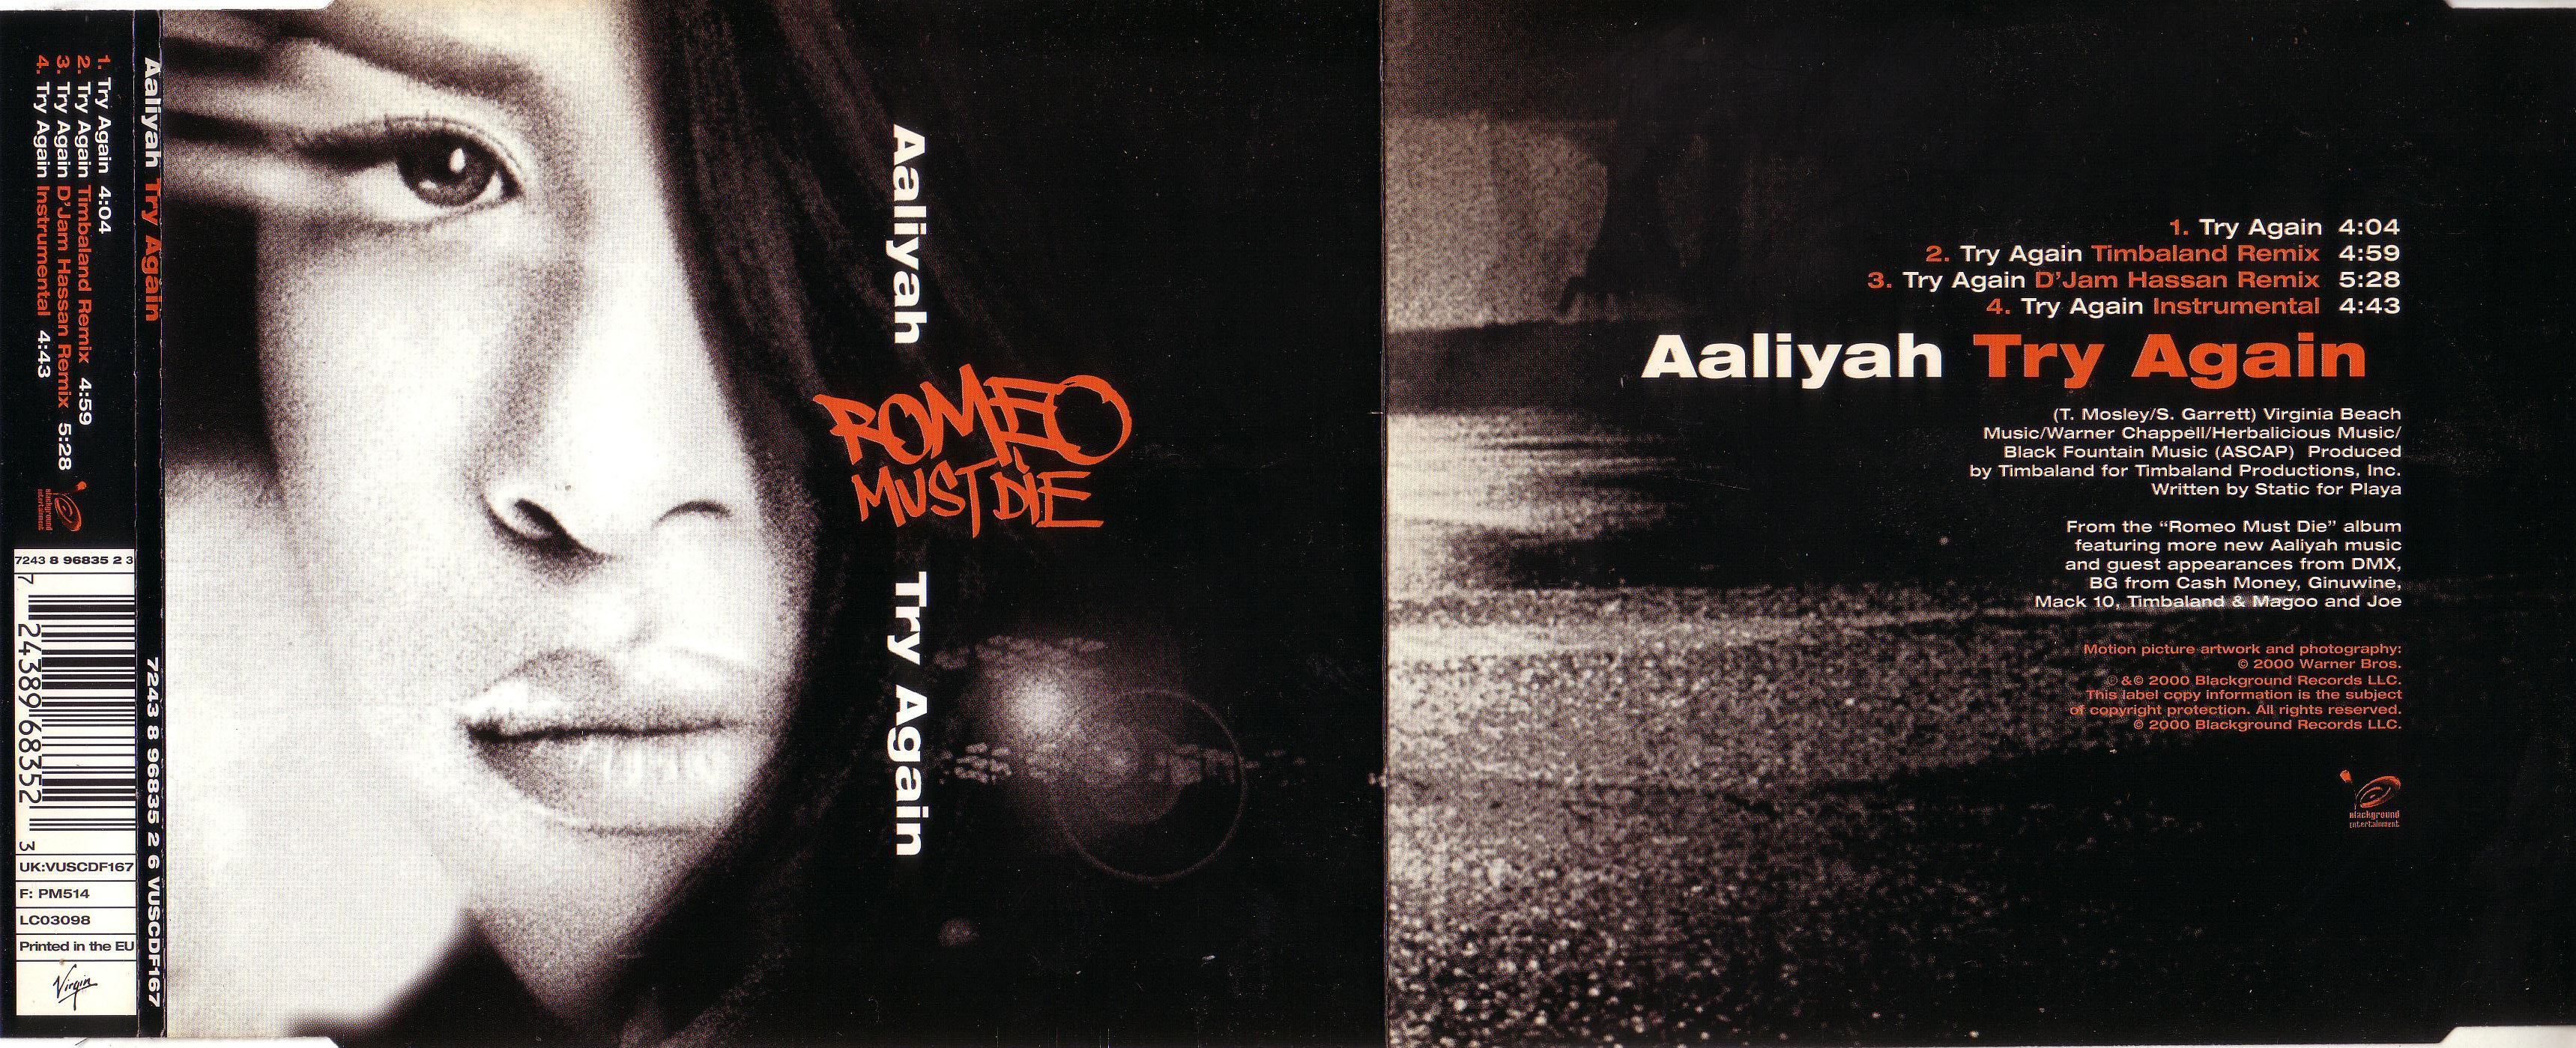 Related Pictures aaliyah pictures of her dead body